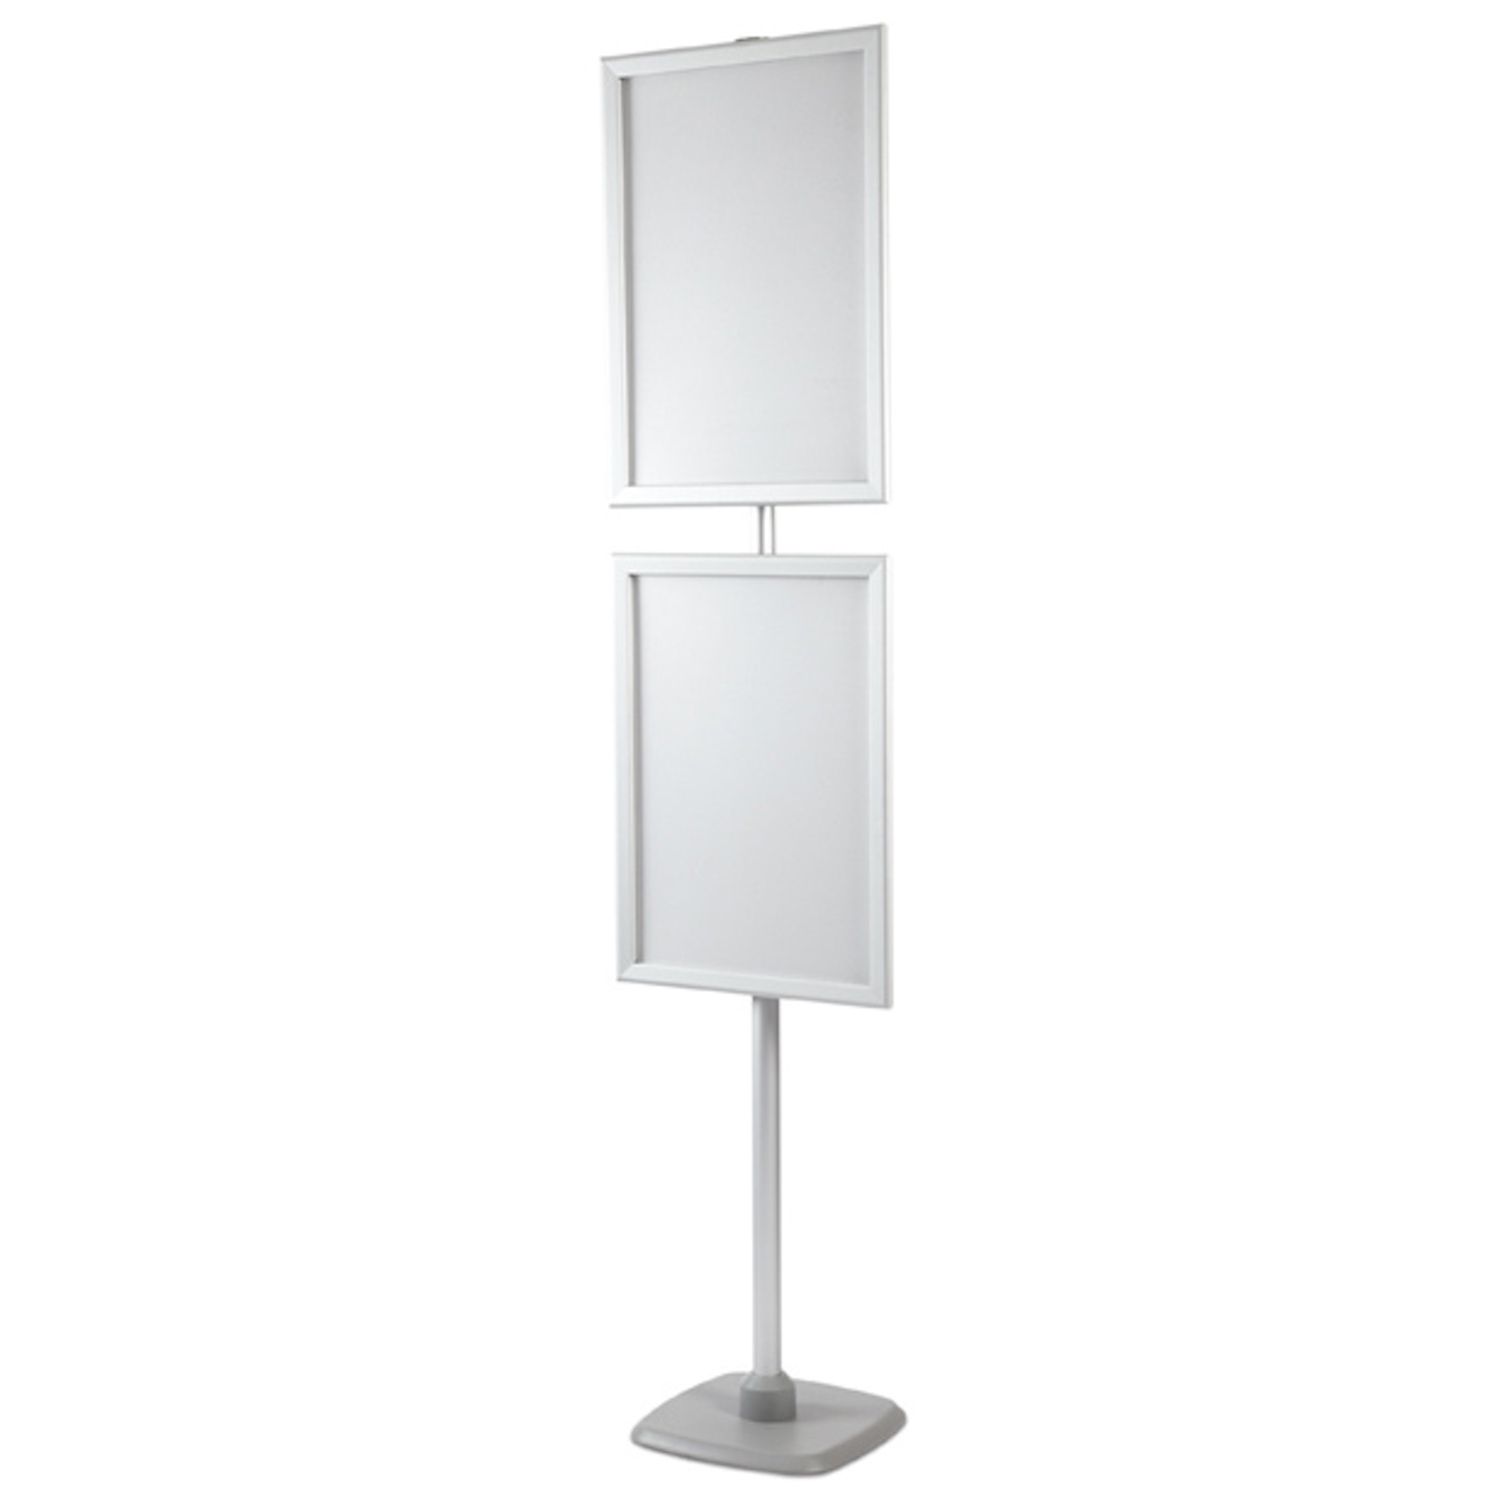 Pole & Frame Stands